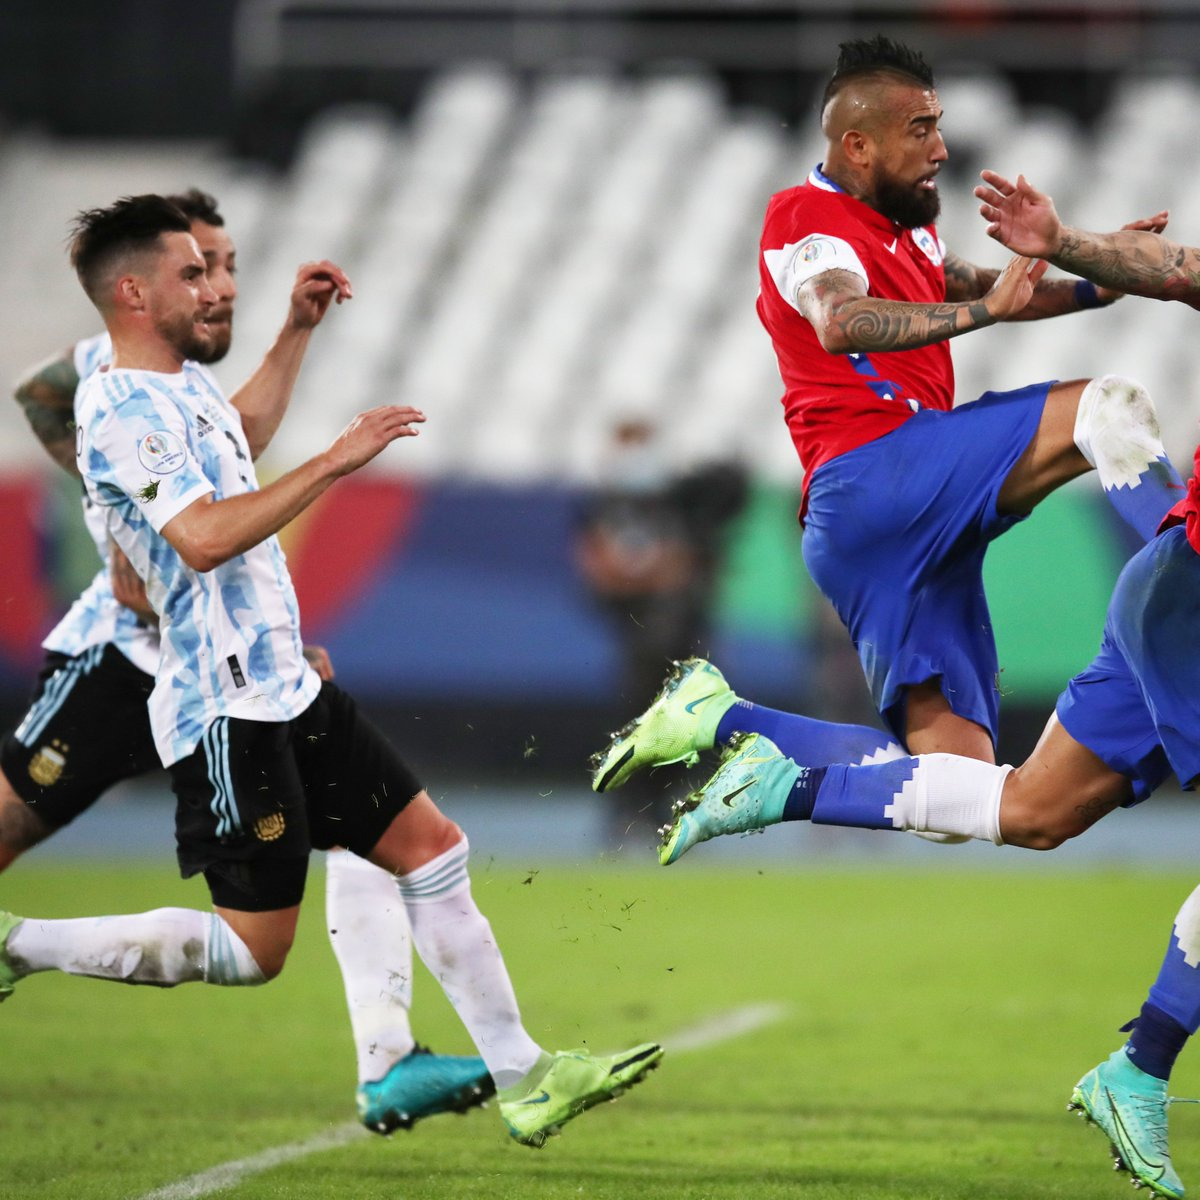 test Twitter Media - #ARGCHI ends in a draw: 1-1. ⚖️  @Nico_Taglia played 90 minutes, @LisandrMartinez didn't come off the bench.   #CopaAmérica https://t.co/p8k5qe4OvX